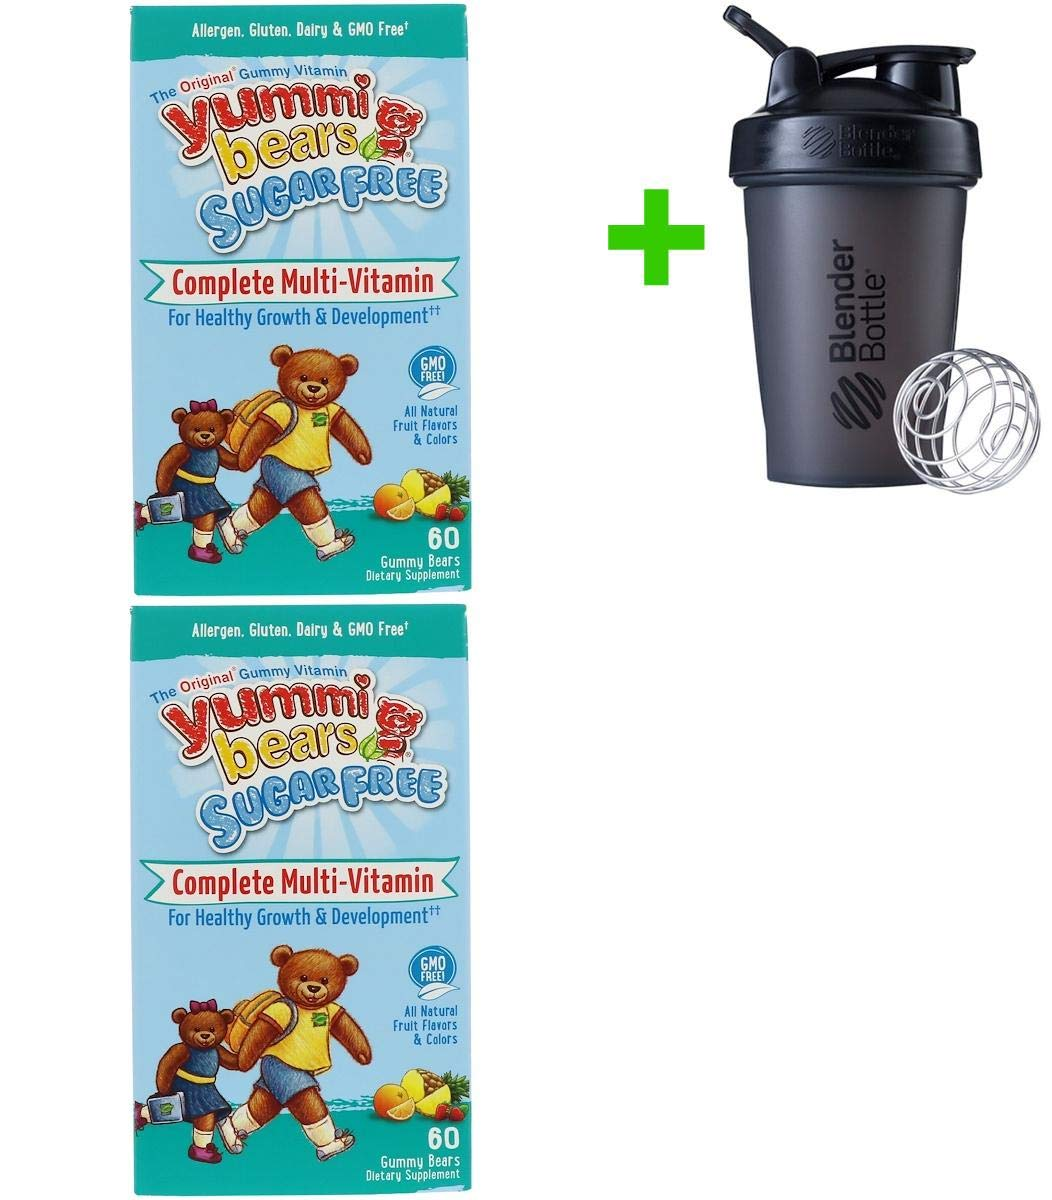 Hero Nutritional Products, Yummi Bears, Complete Multi-Vitamin, Sugar Free, All Natural Fruit Flavors, 60 Gummy Bears(2 Packs)+Sundesa, Blender Bottle, Classic with Loop, 20 oz